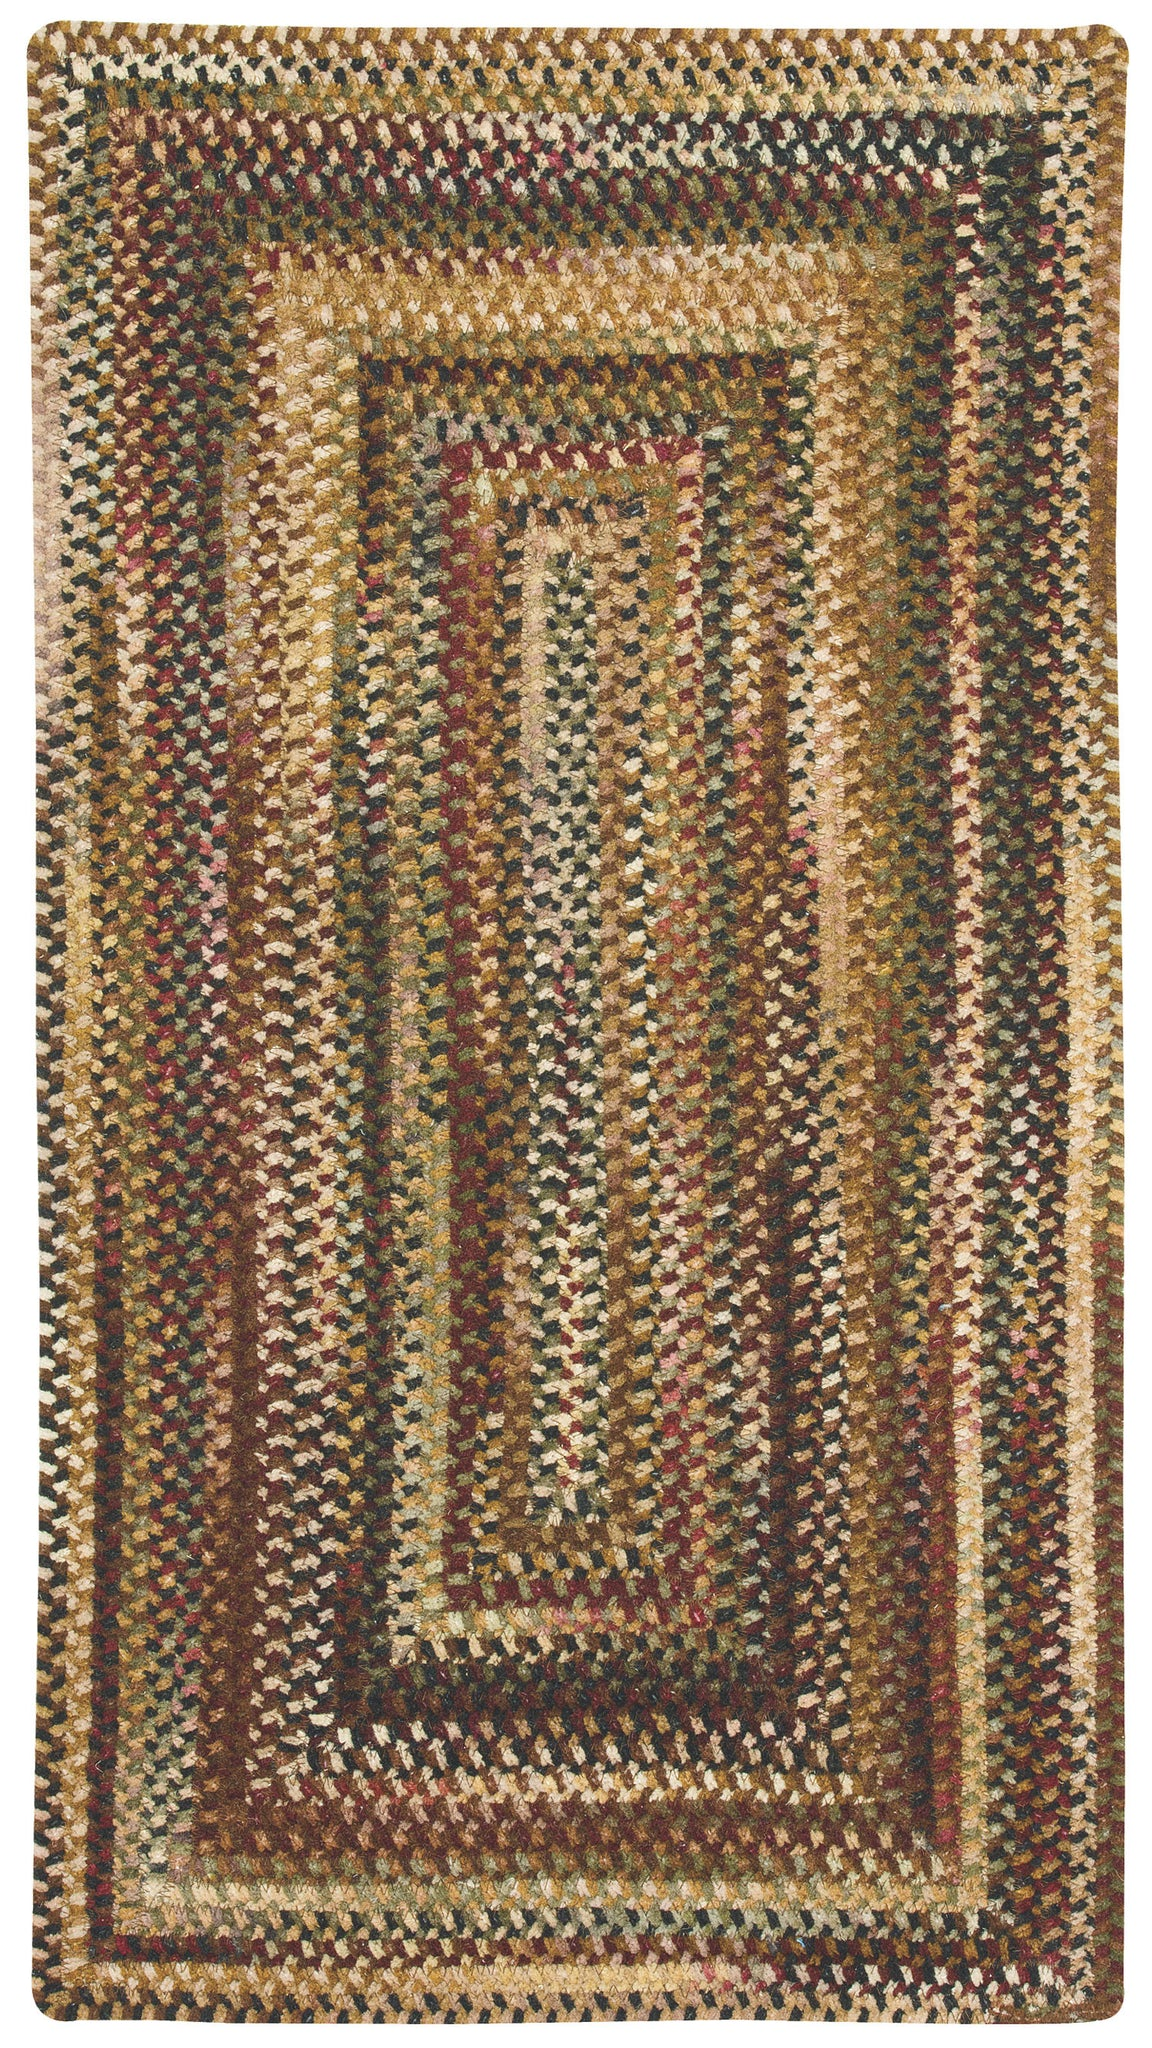 Capel Eaton 0442 Burgundy 575 Area Rug main image